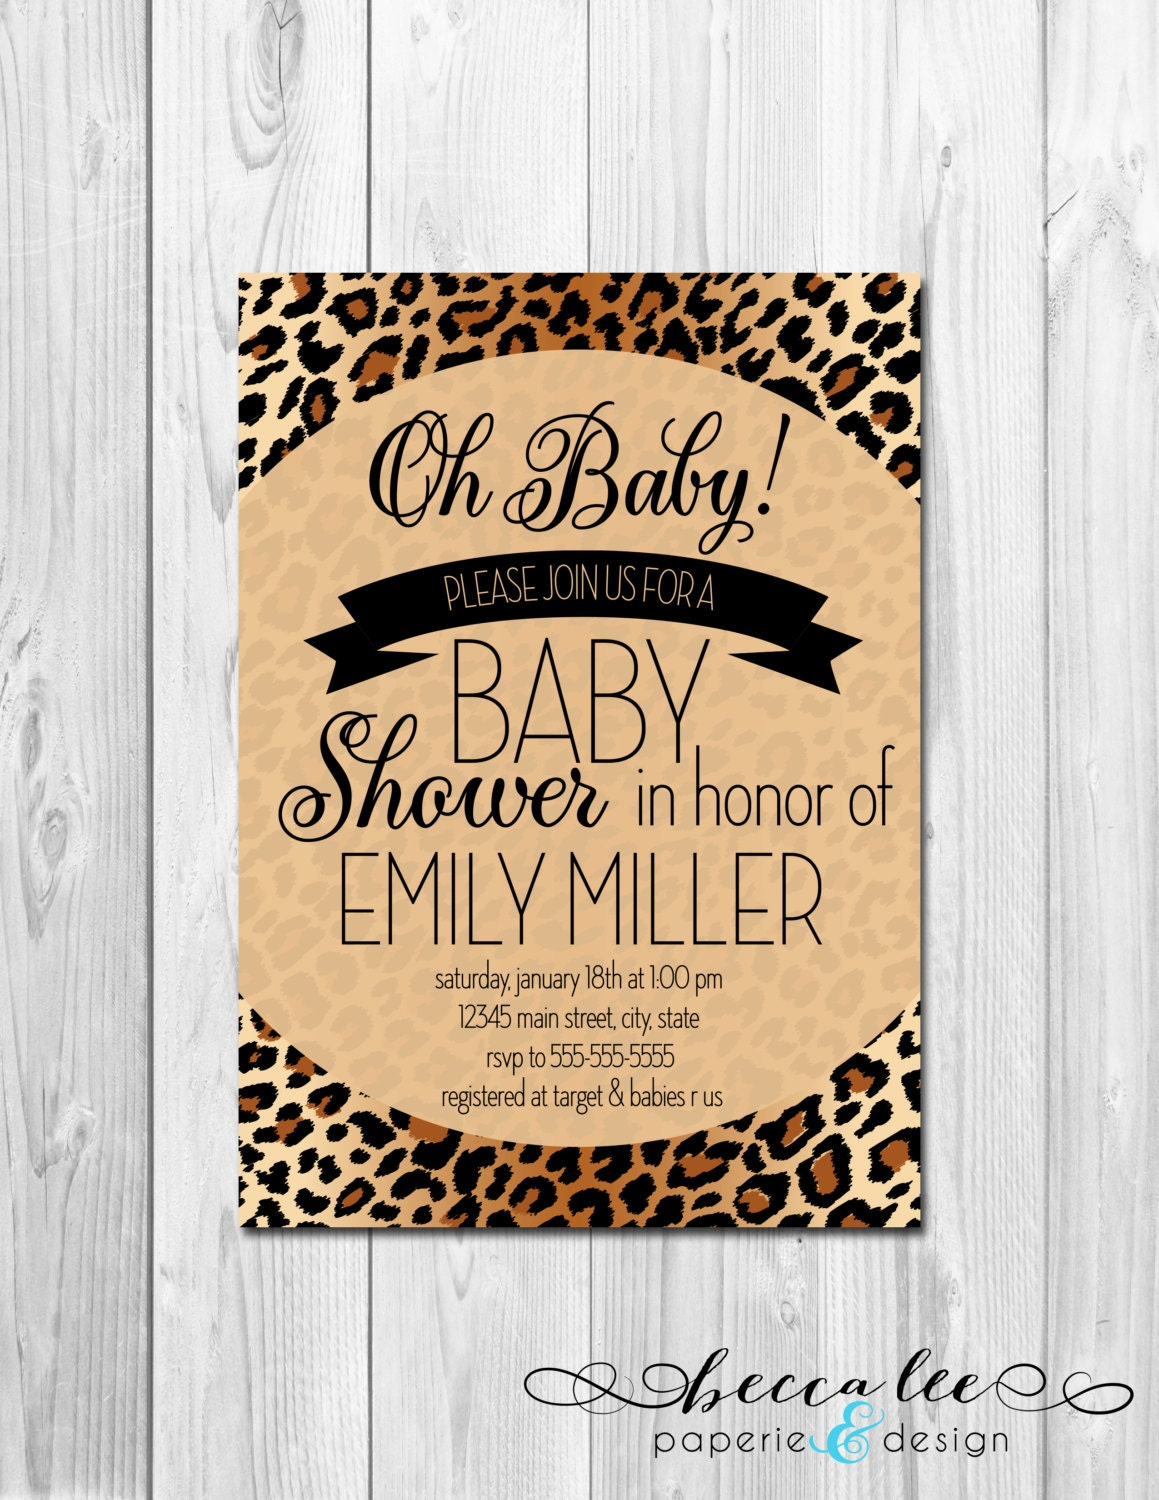 oh baby animal print baby shower invitation brown cheetah leopard